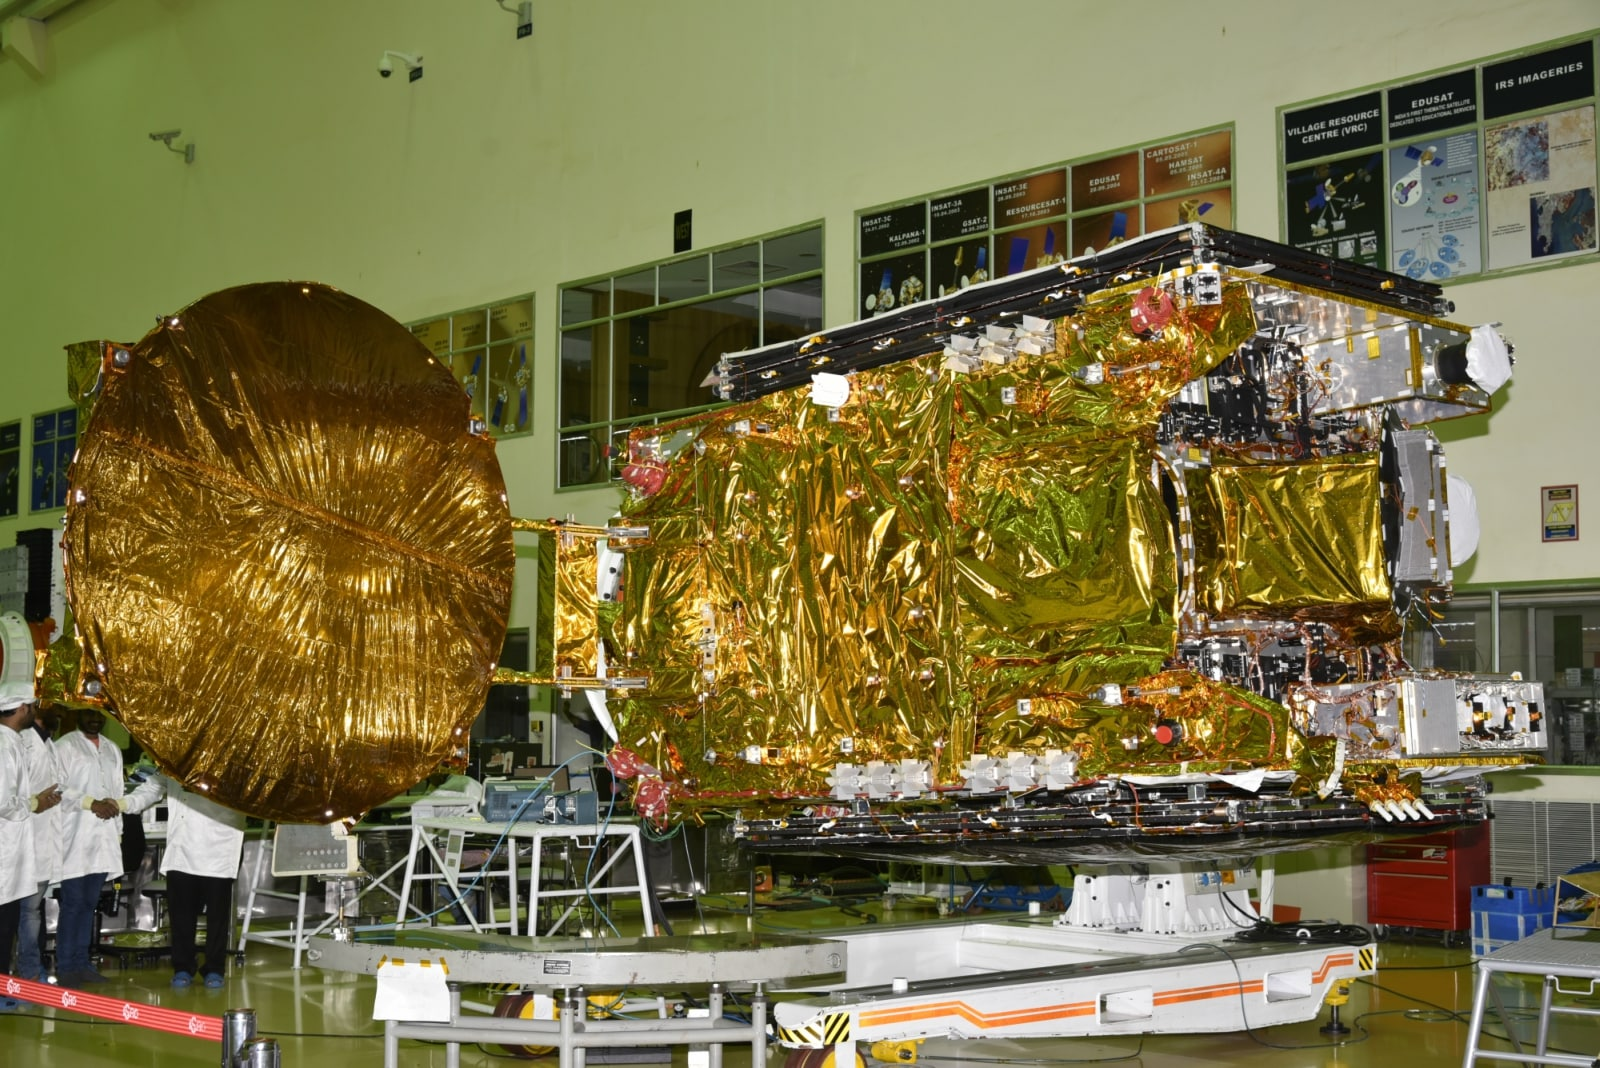 The satellite derives its heritage from ISRO's earlier INSAT/GSAT satellite series. The satellite provides Indian mainland and island coverage.